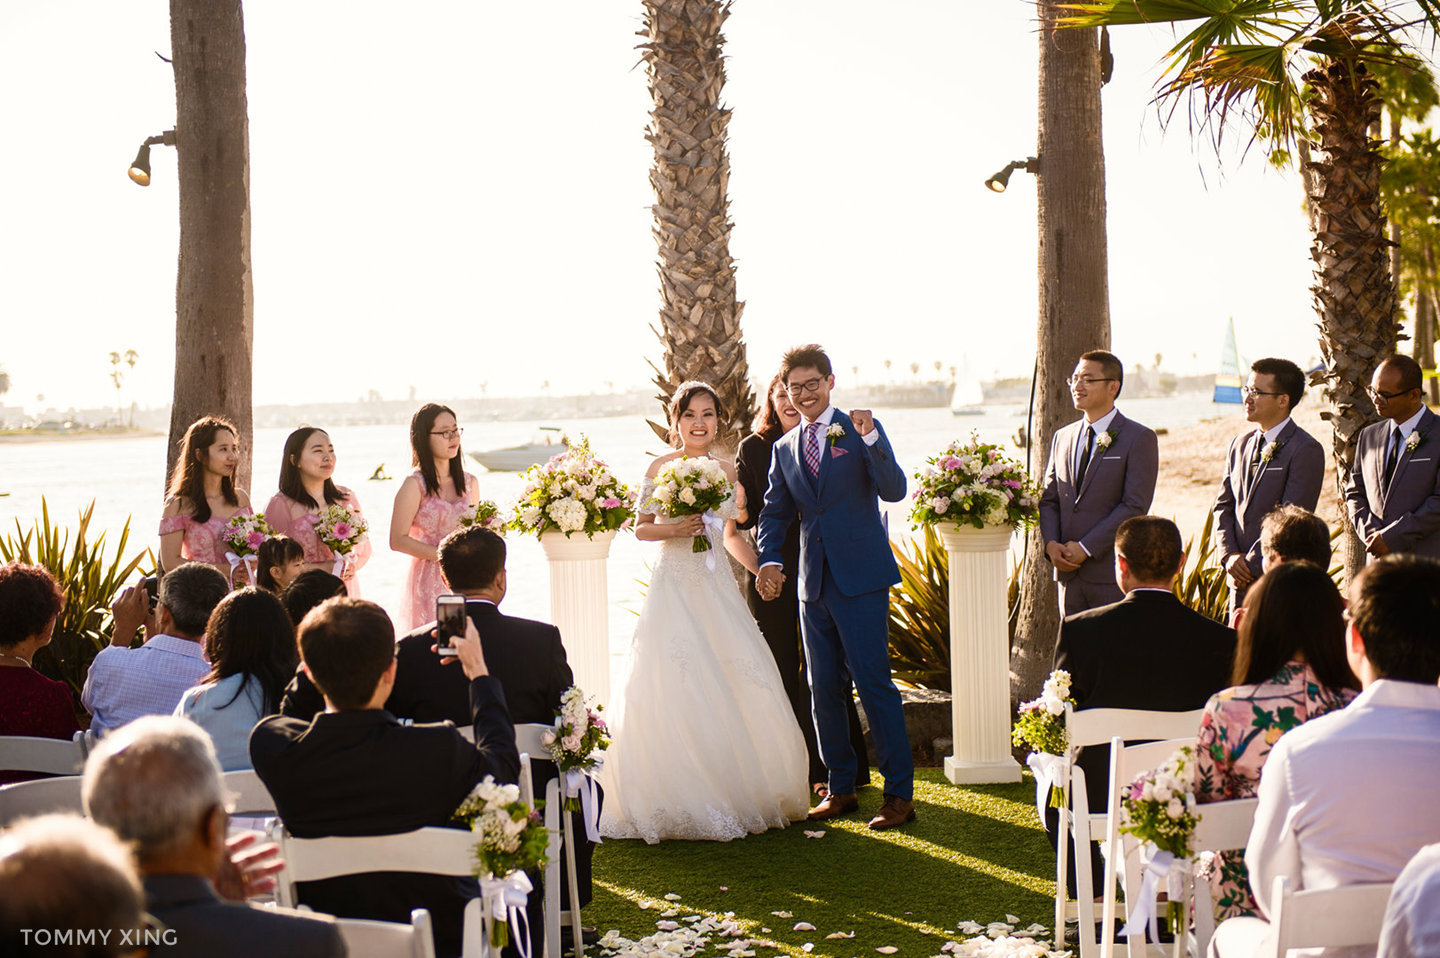 Paradise Point Resort Wedding Xiaolu & Bin San Diego 圣地亚哥婚礼摄影跟拍 Tommy Xing Photography 洛杉矶婚礼婚纱照摄影师 169.jpg